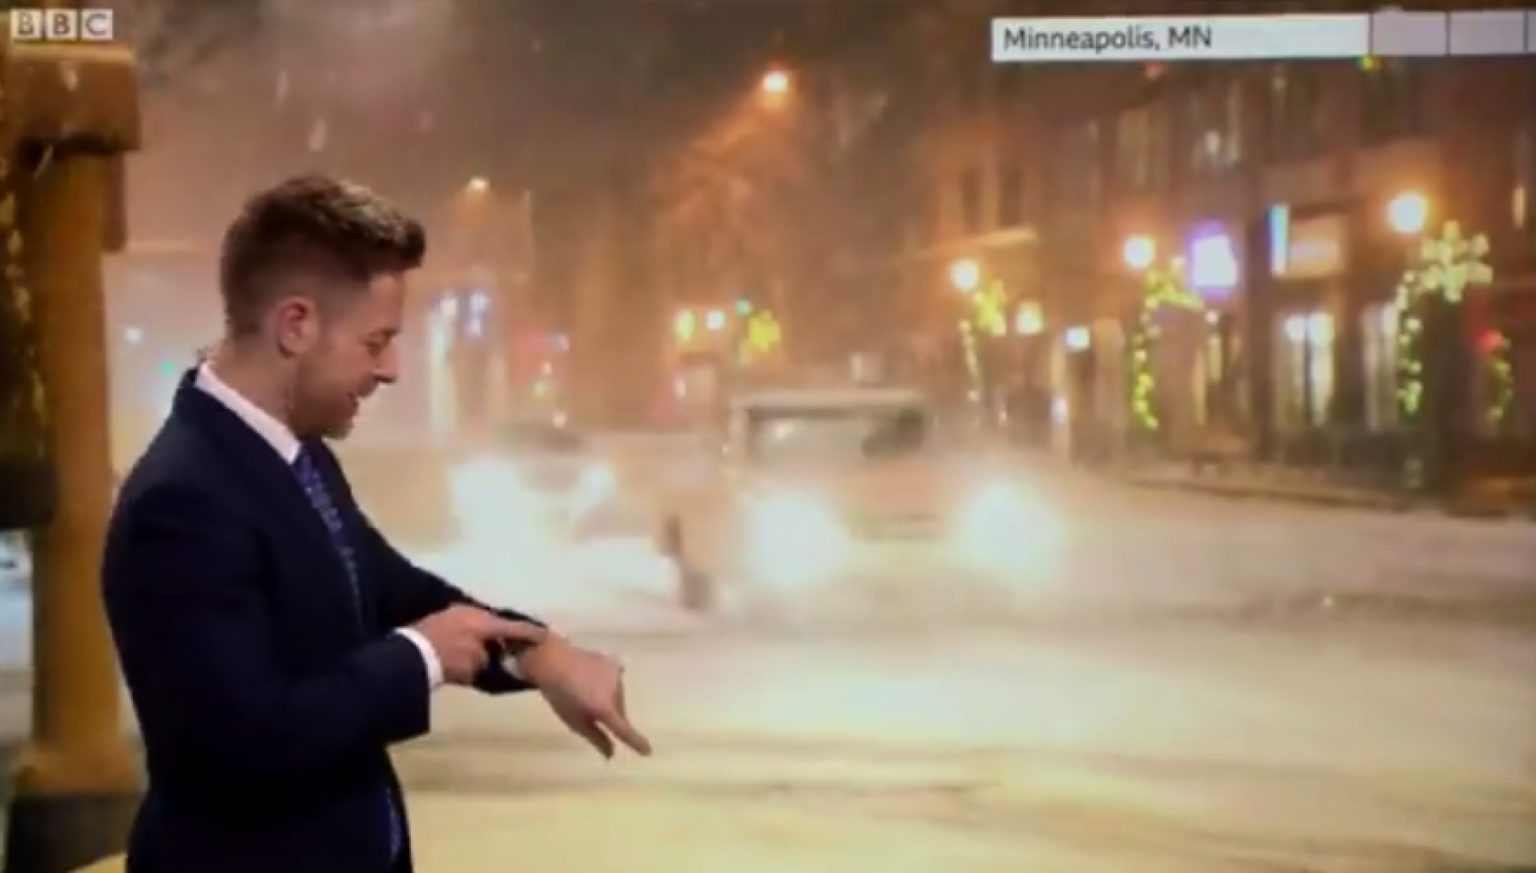 Siri corrects weatherman during a live broadcast